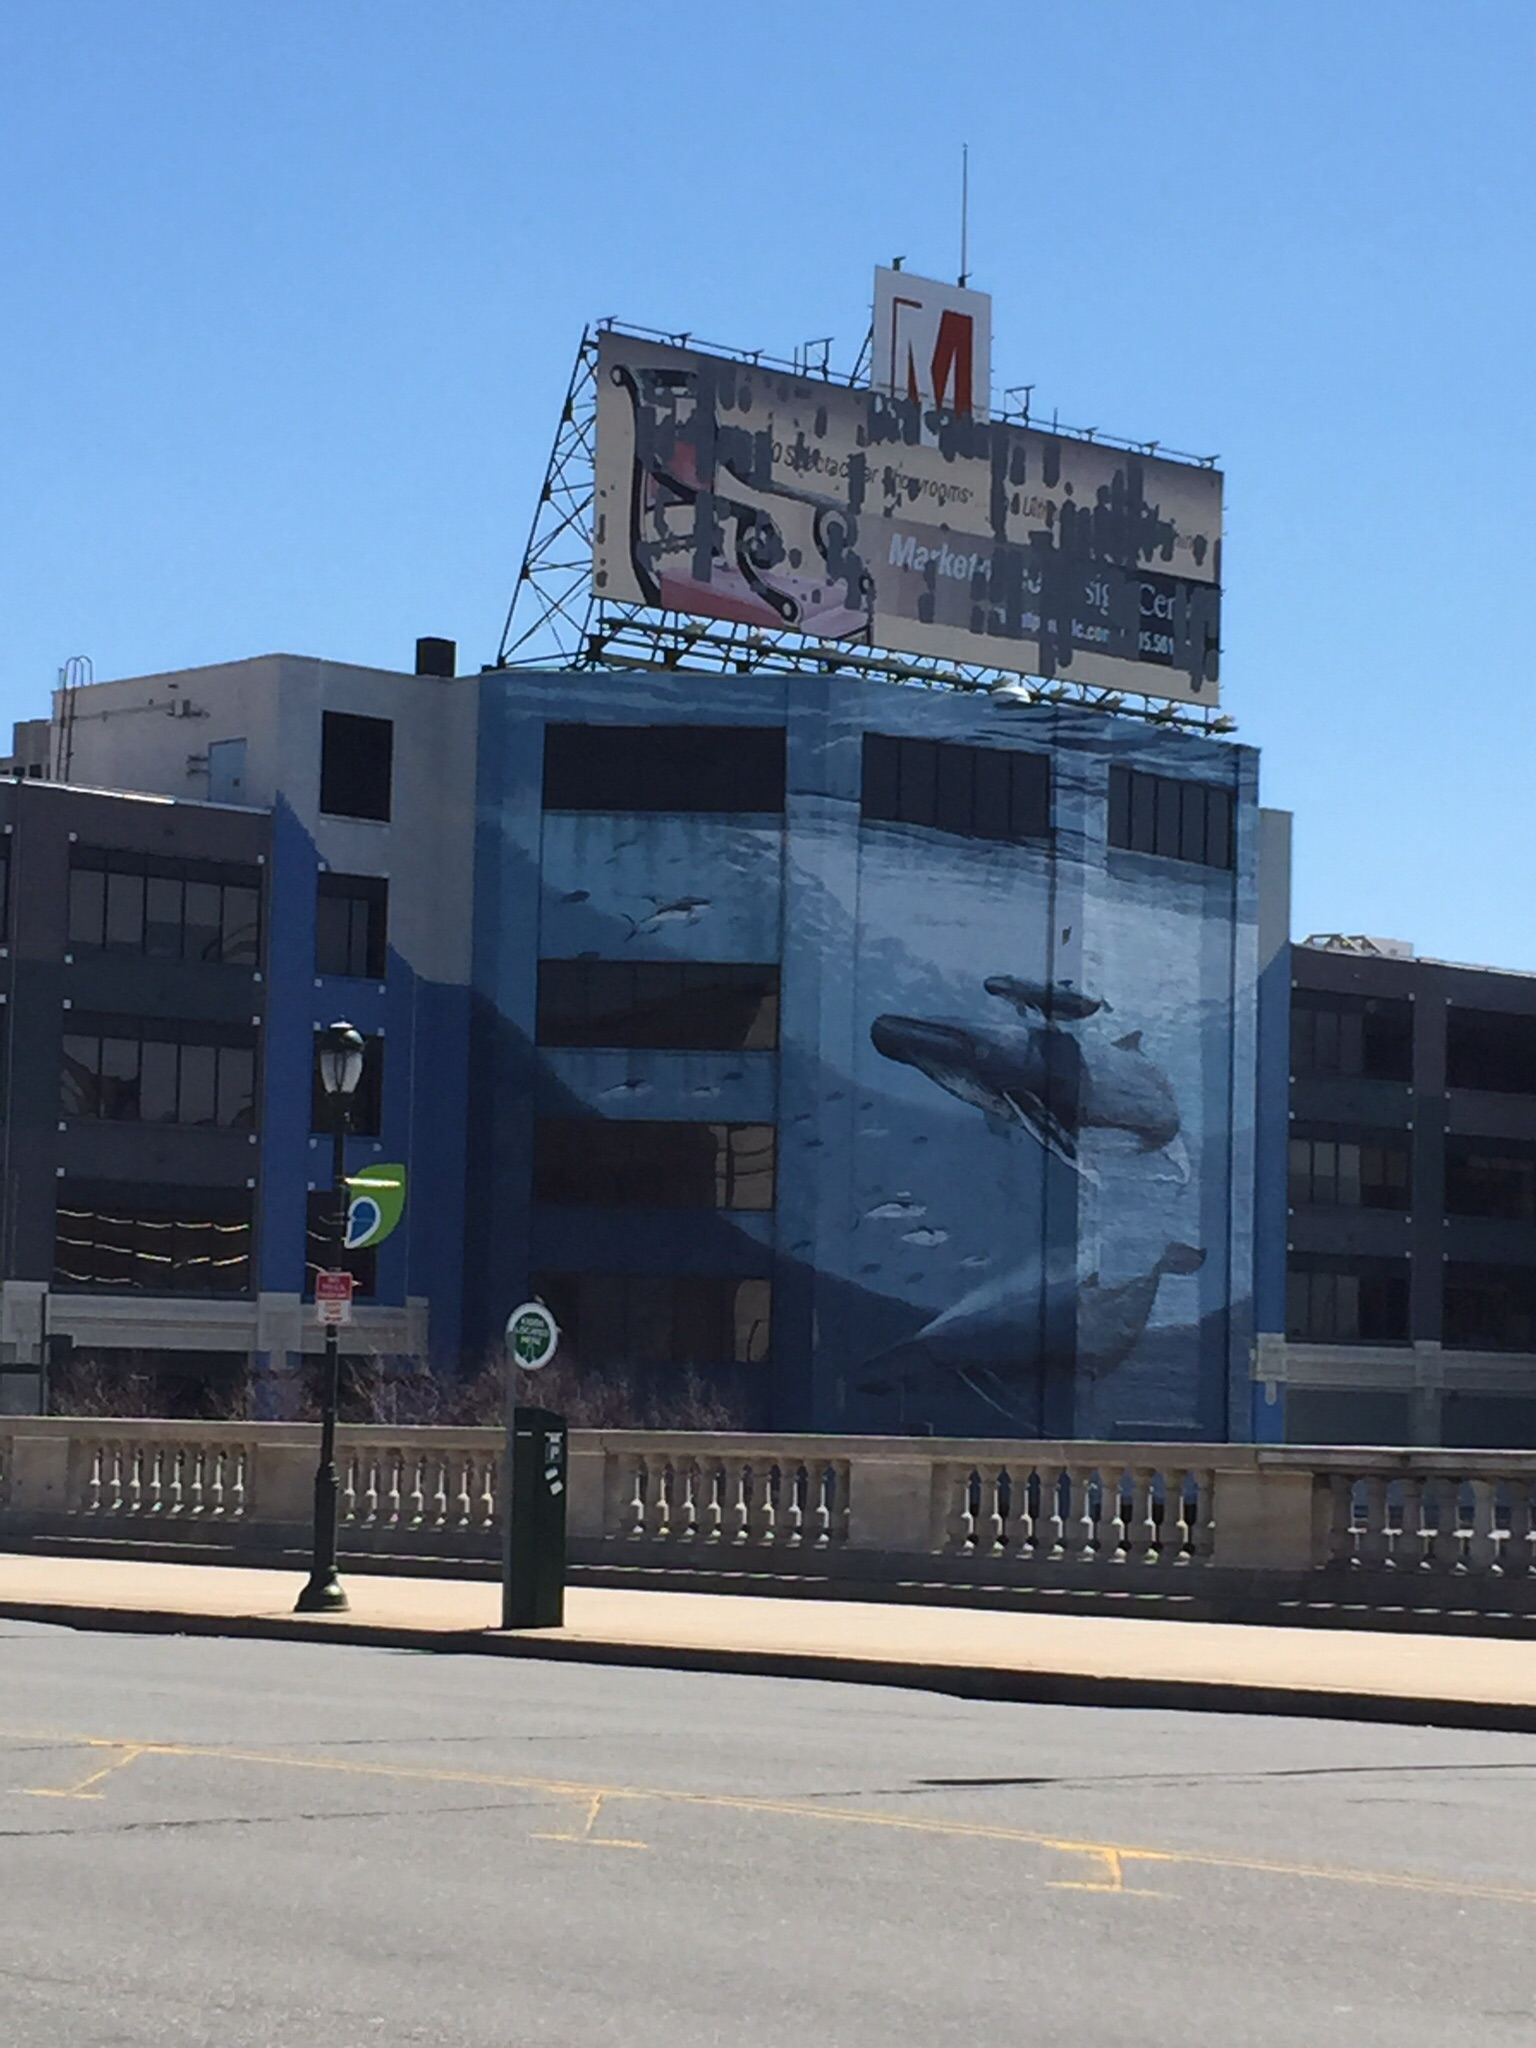 Mural of whales